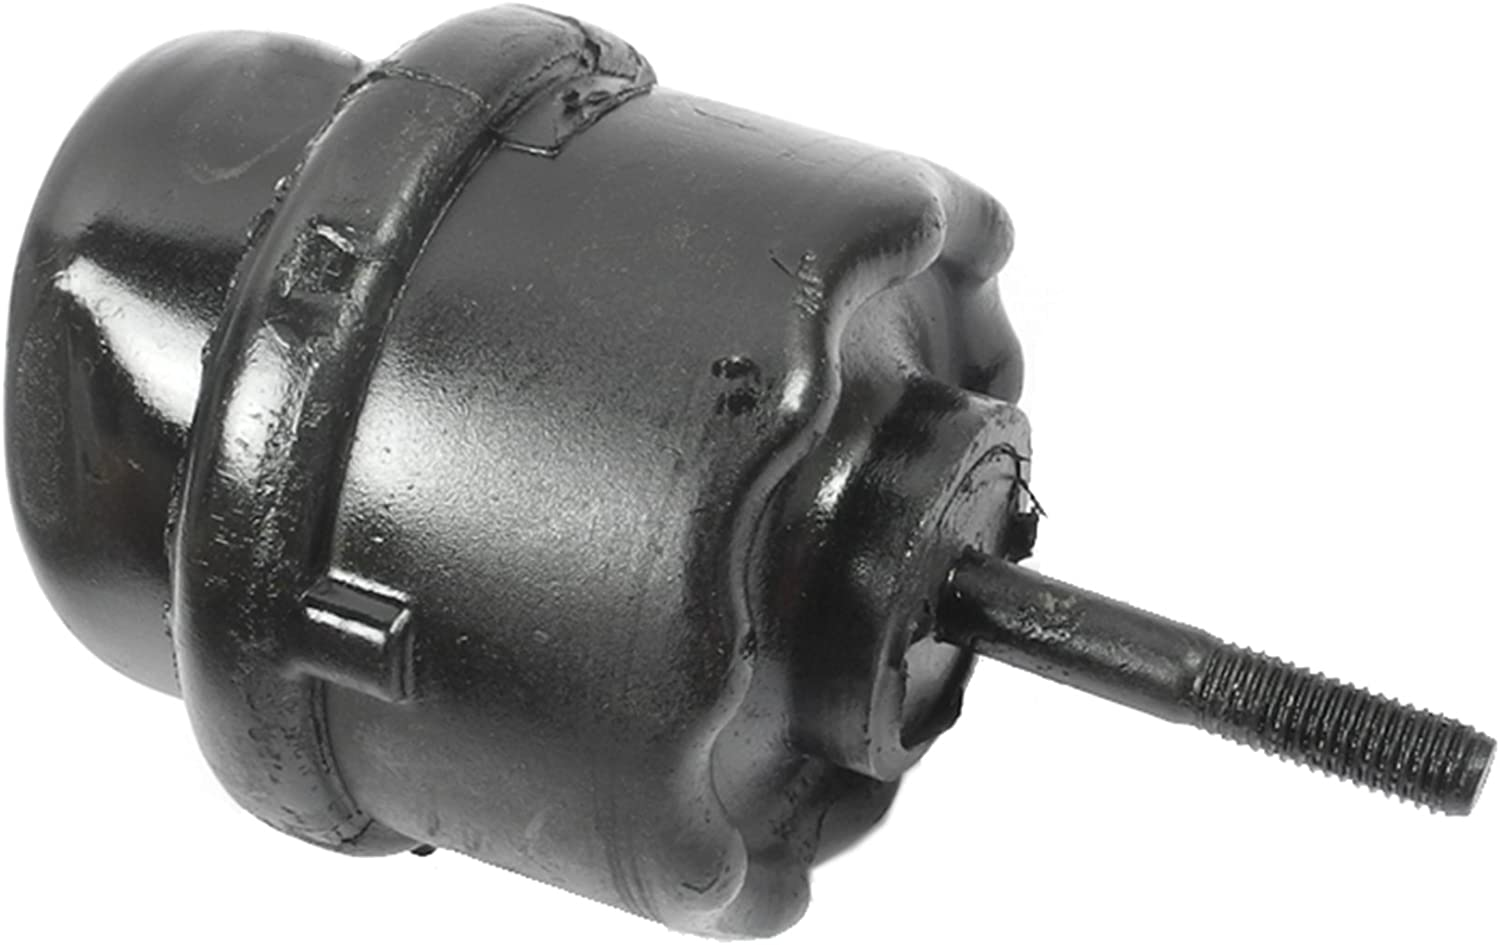 Hydraulic Rear Engine Mount for 2006-2008 Buick Lucerne 3.8L